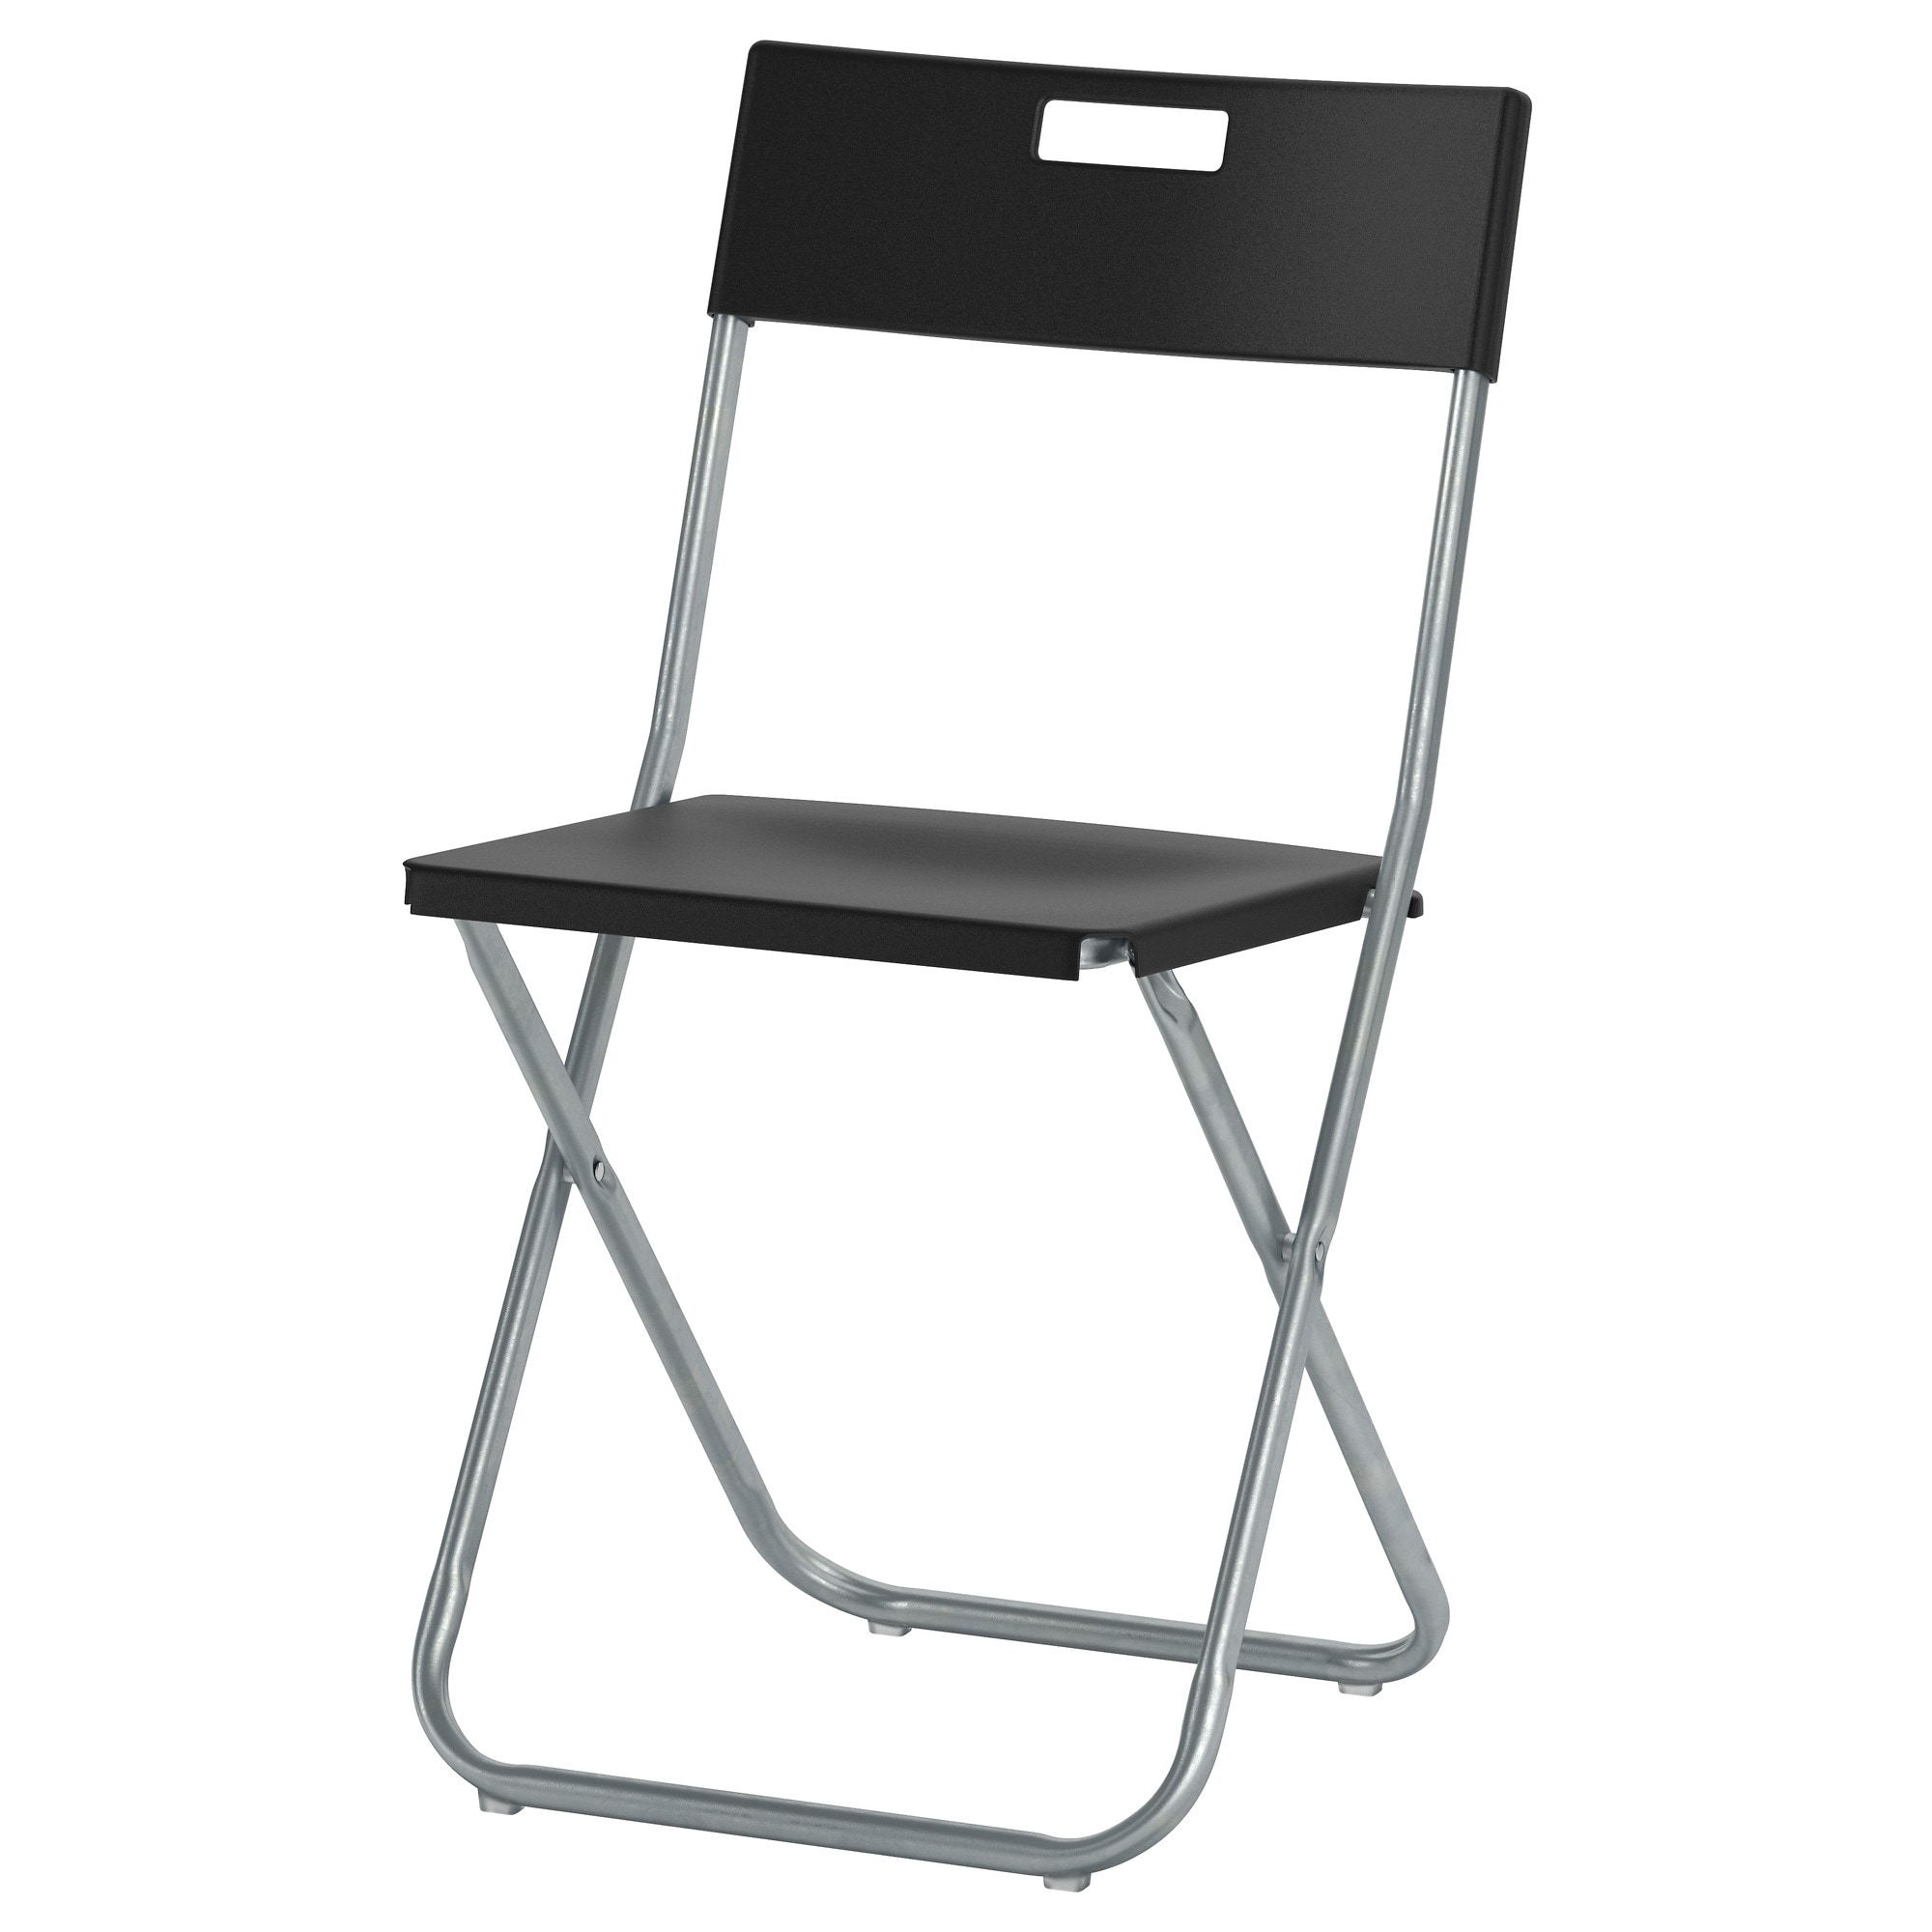 gunde folding chair black tested for 220 lb width 16 18